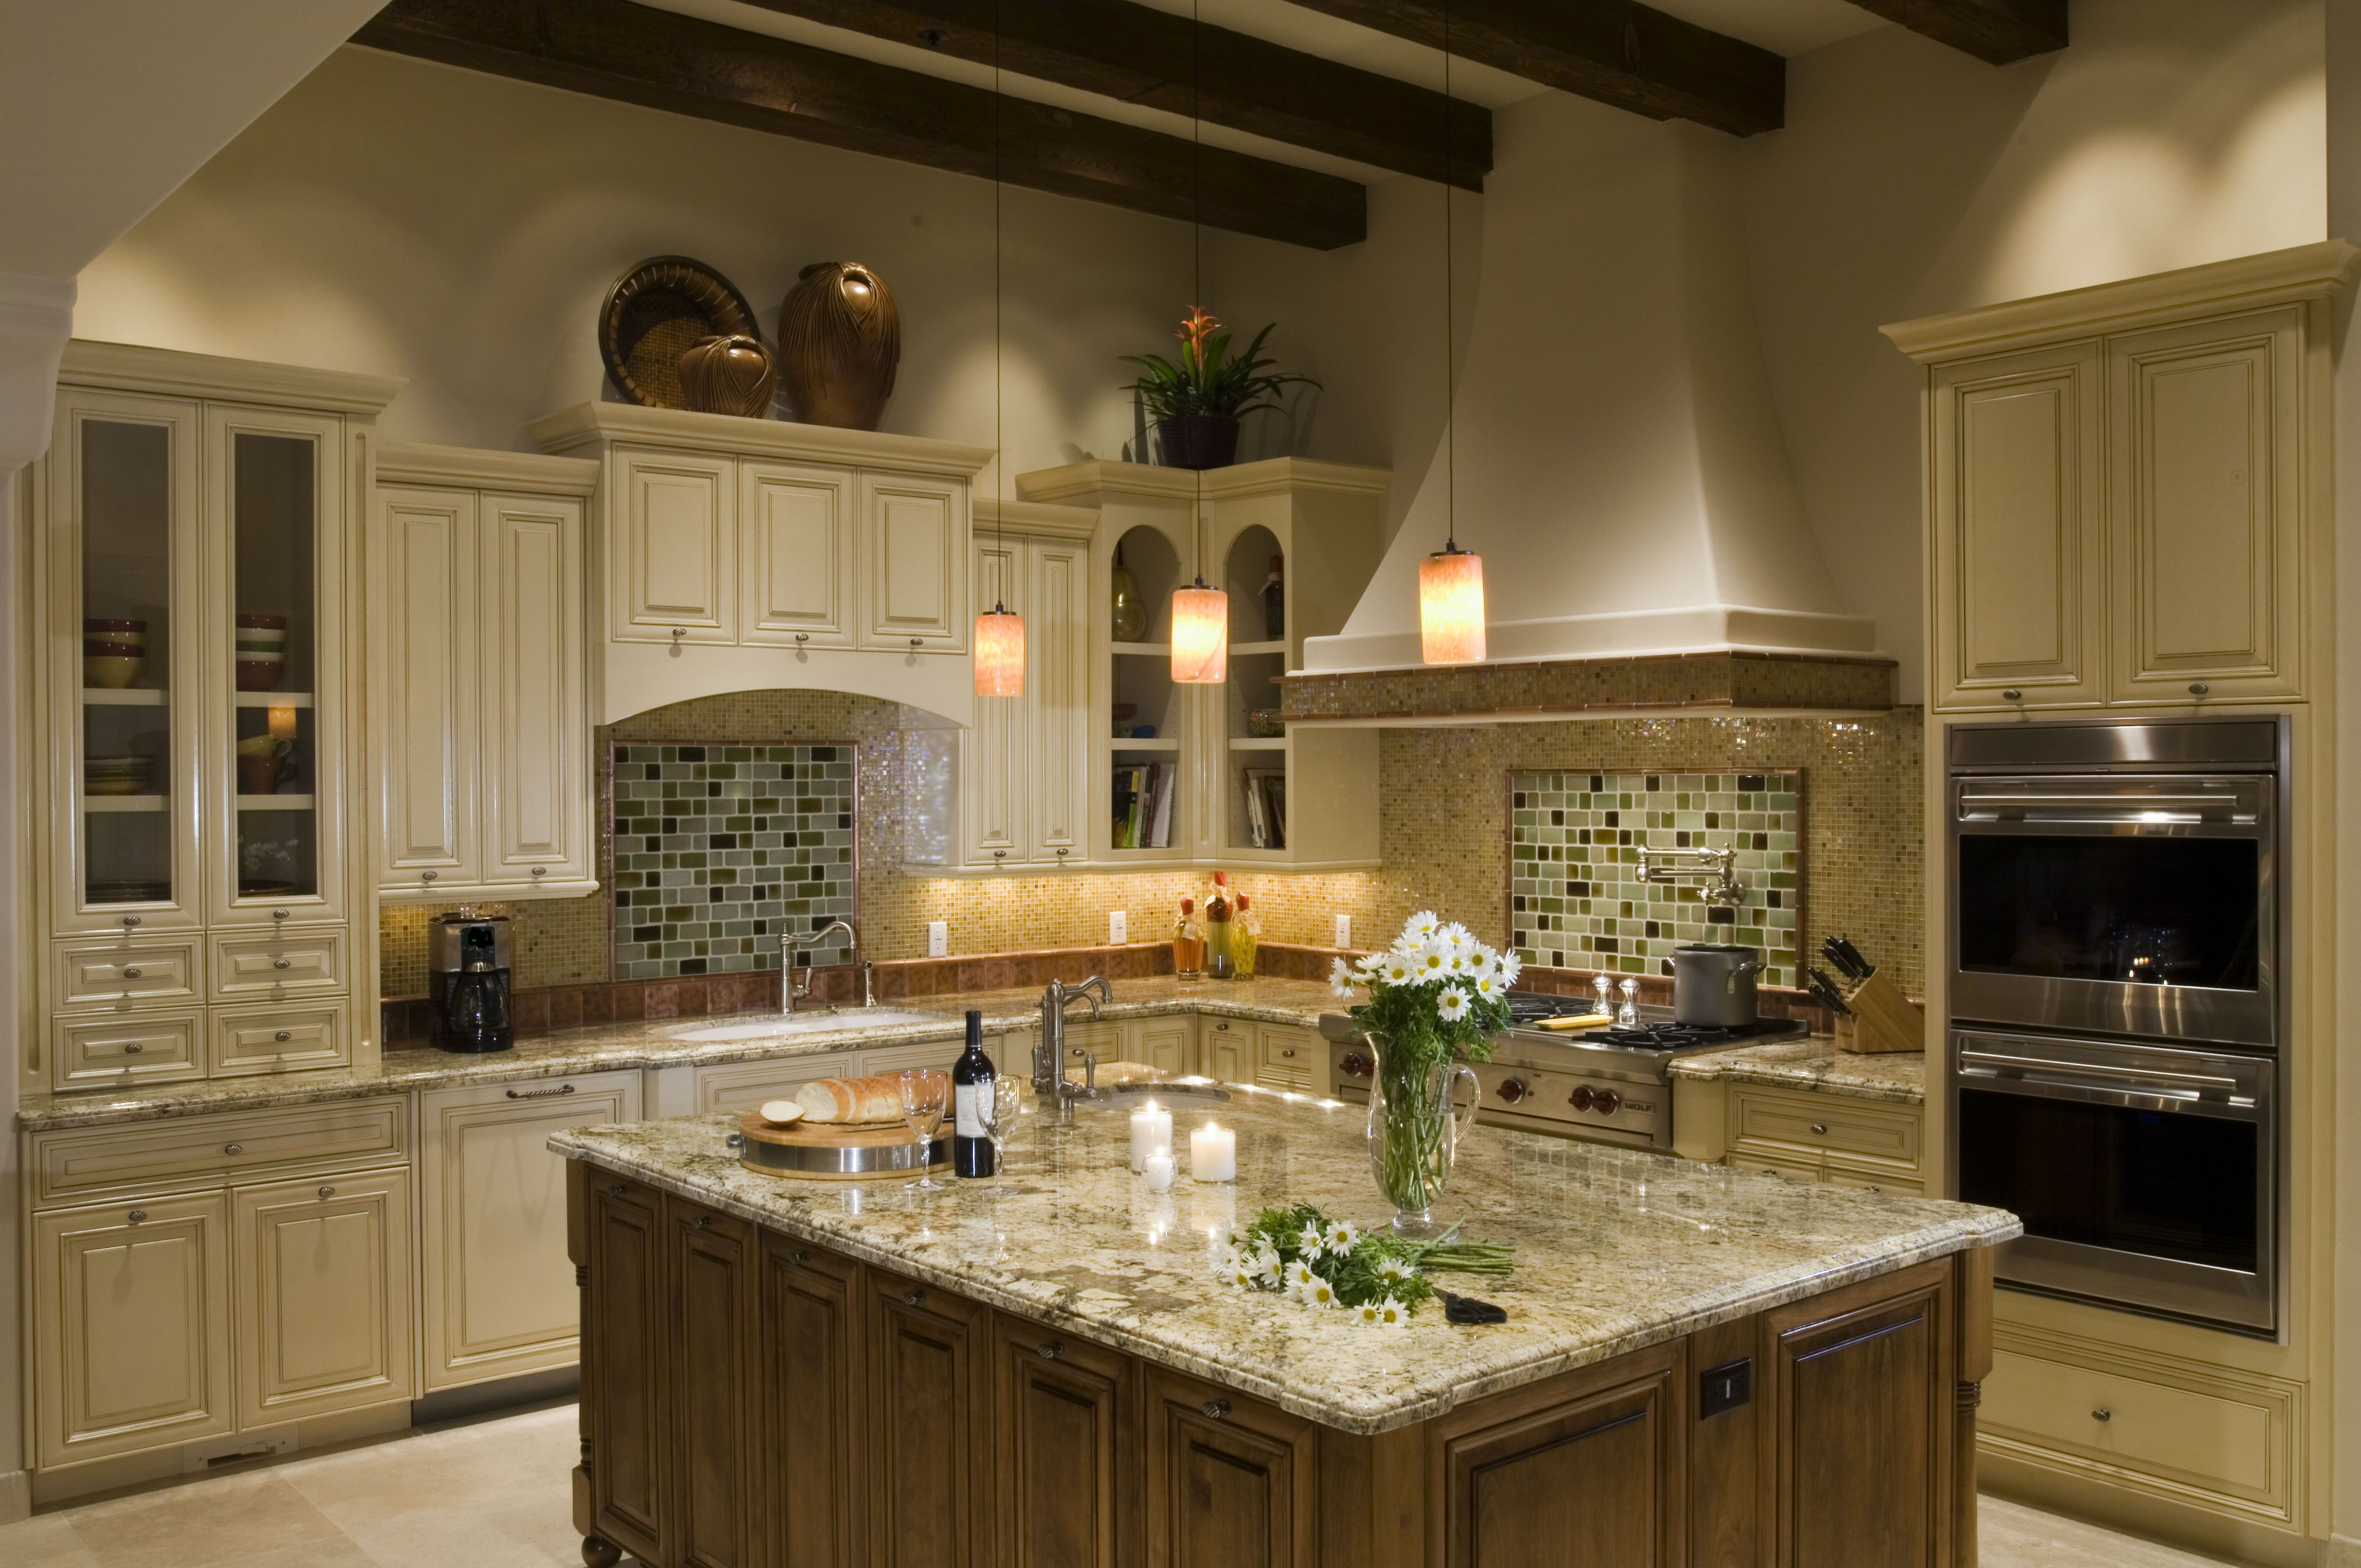 Stunning Kitchen Remodeling Ideas with DIY Hanging Lamps and Elegant